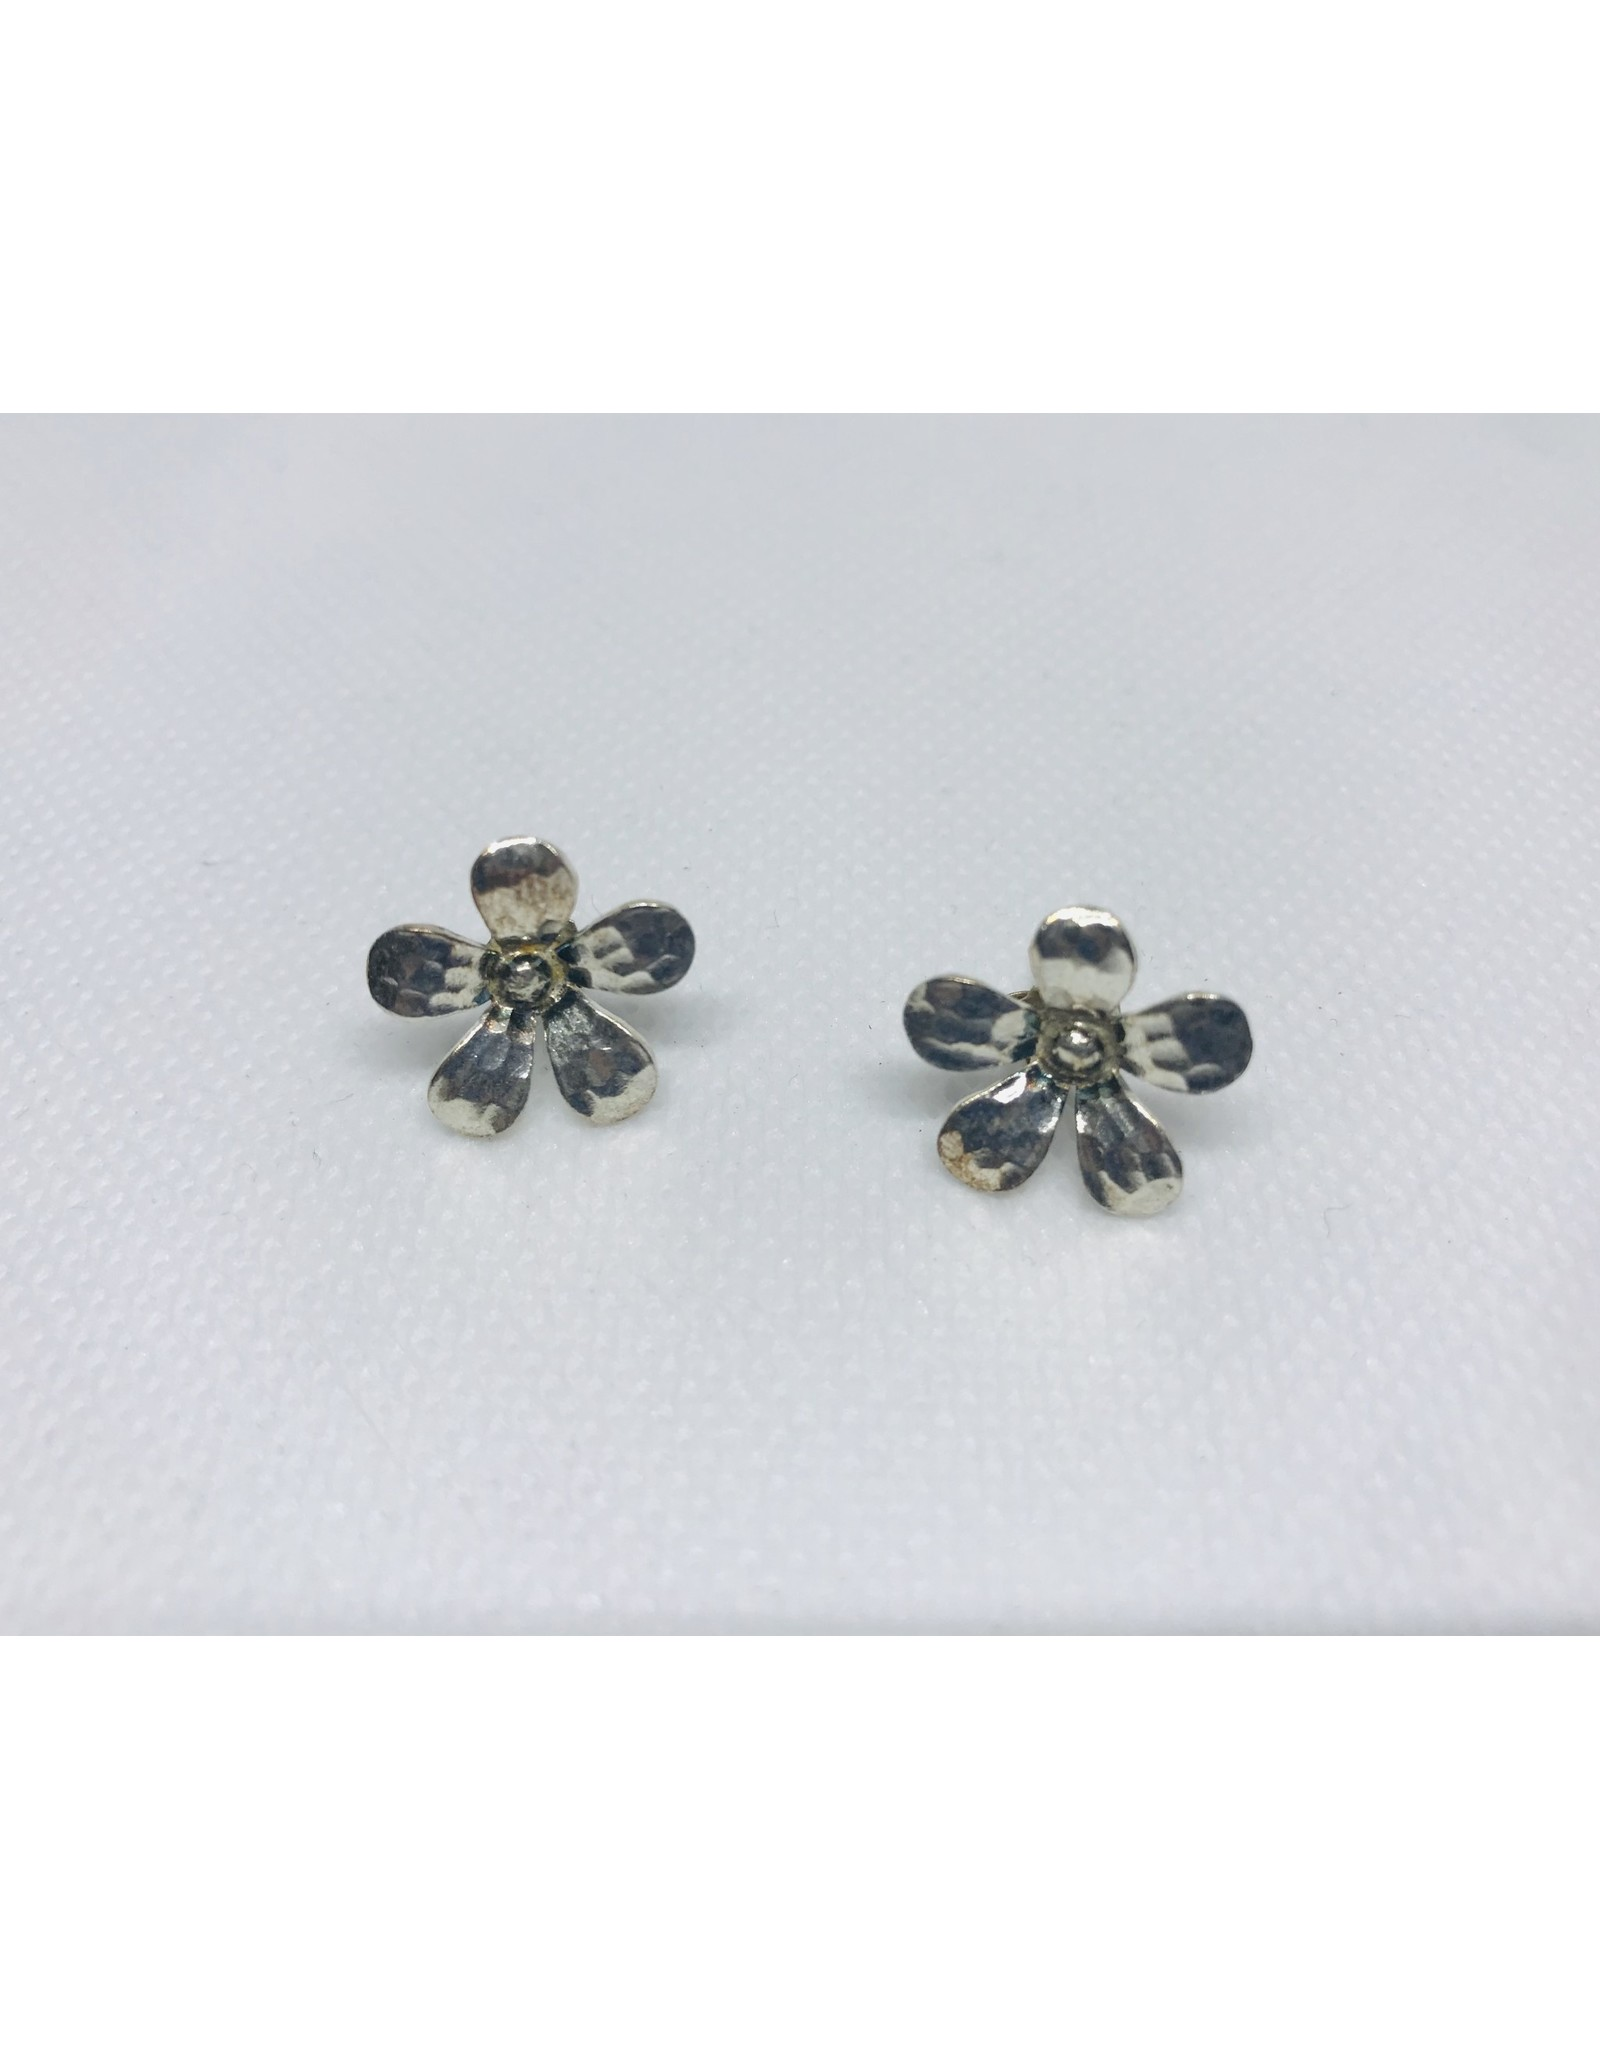 Floral Stud Earrings  Hammered Daisy, Hill Tribe, Thailand